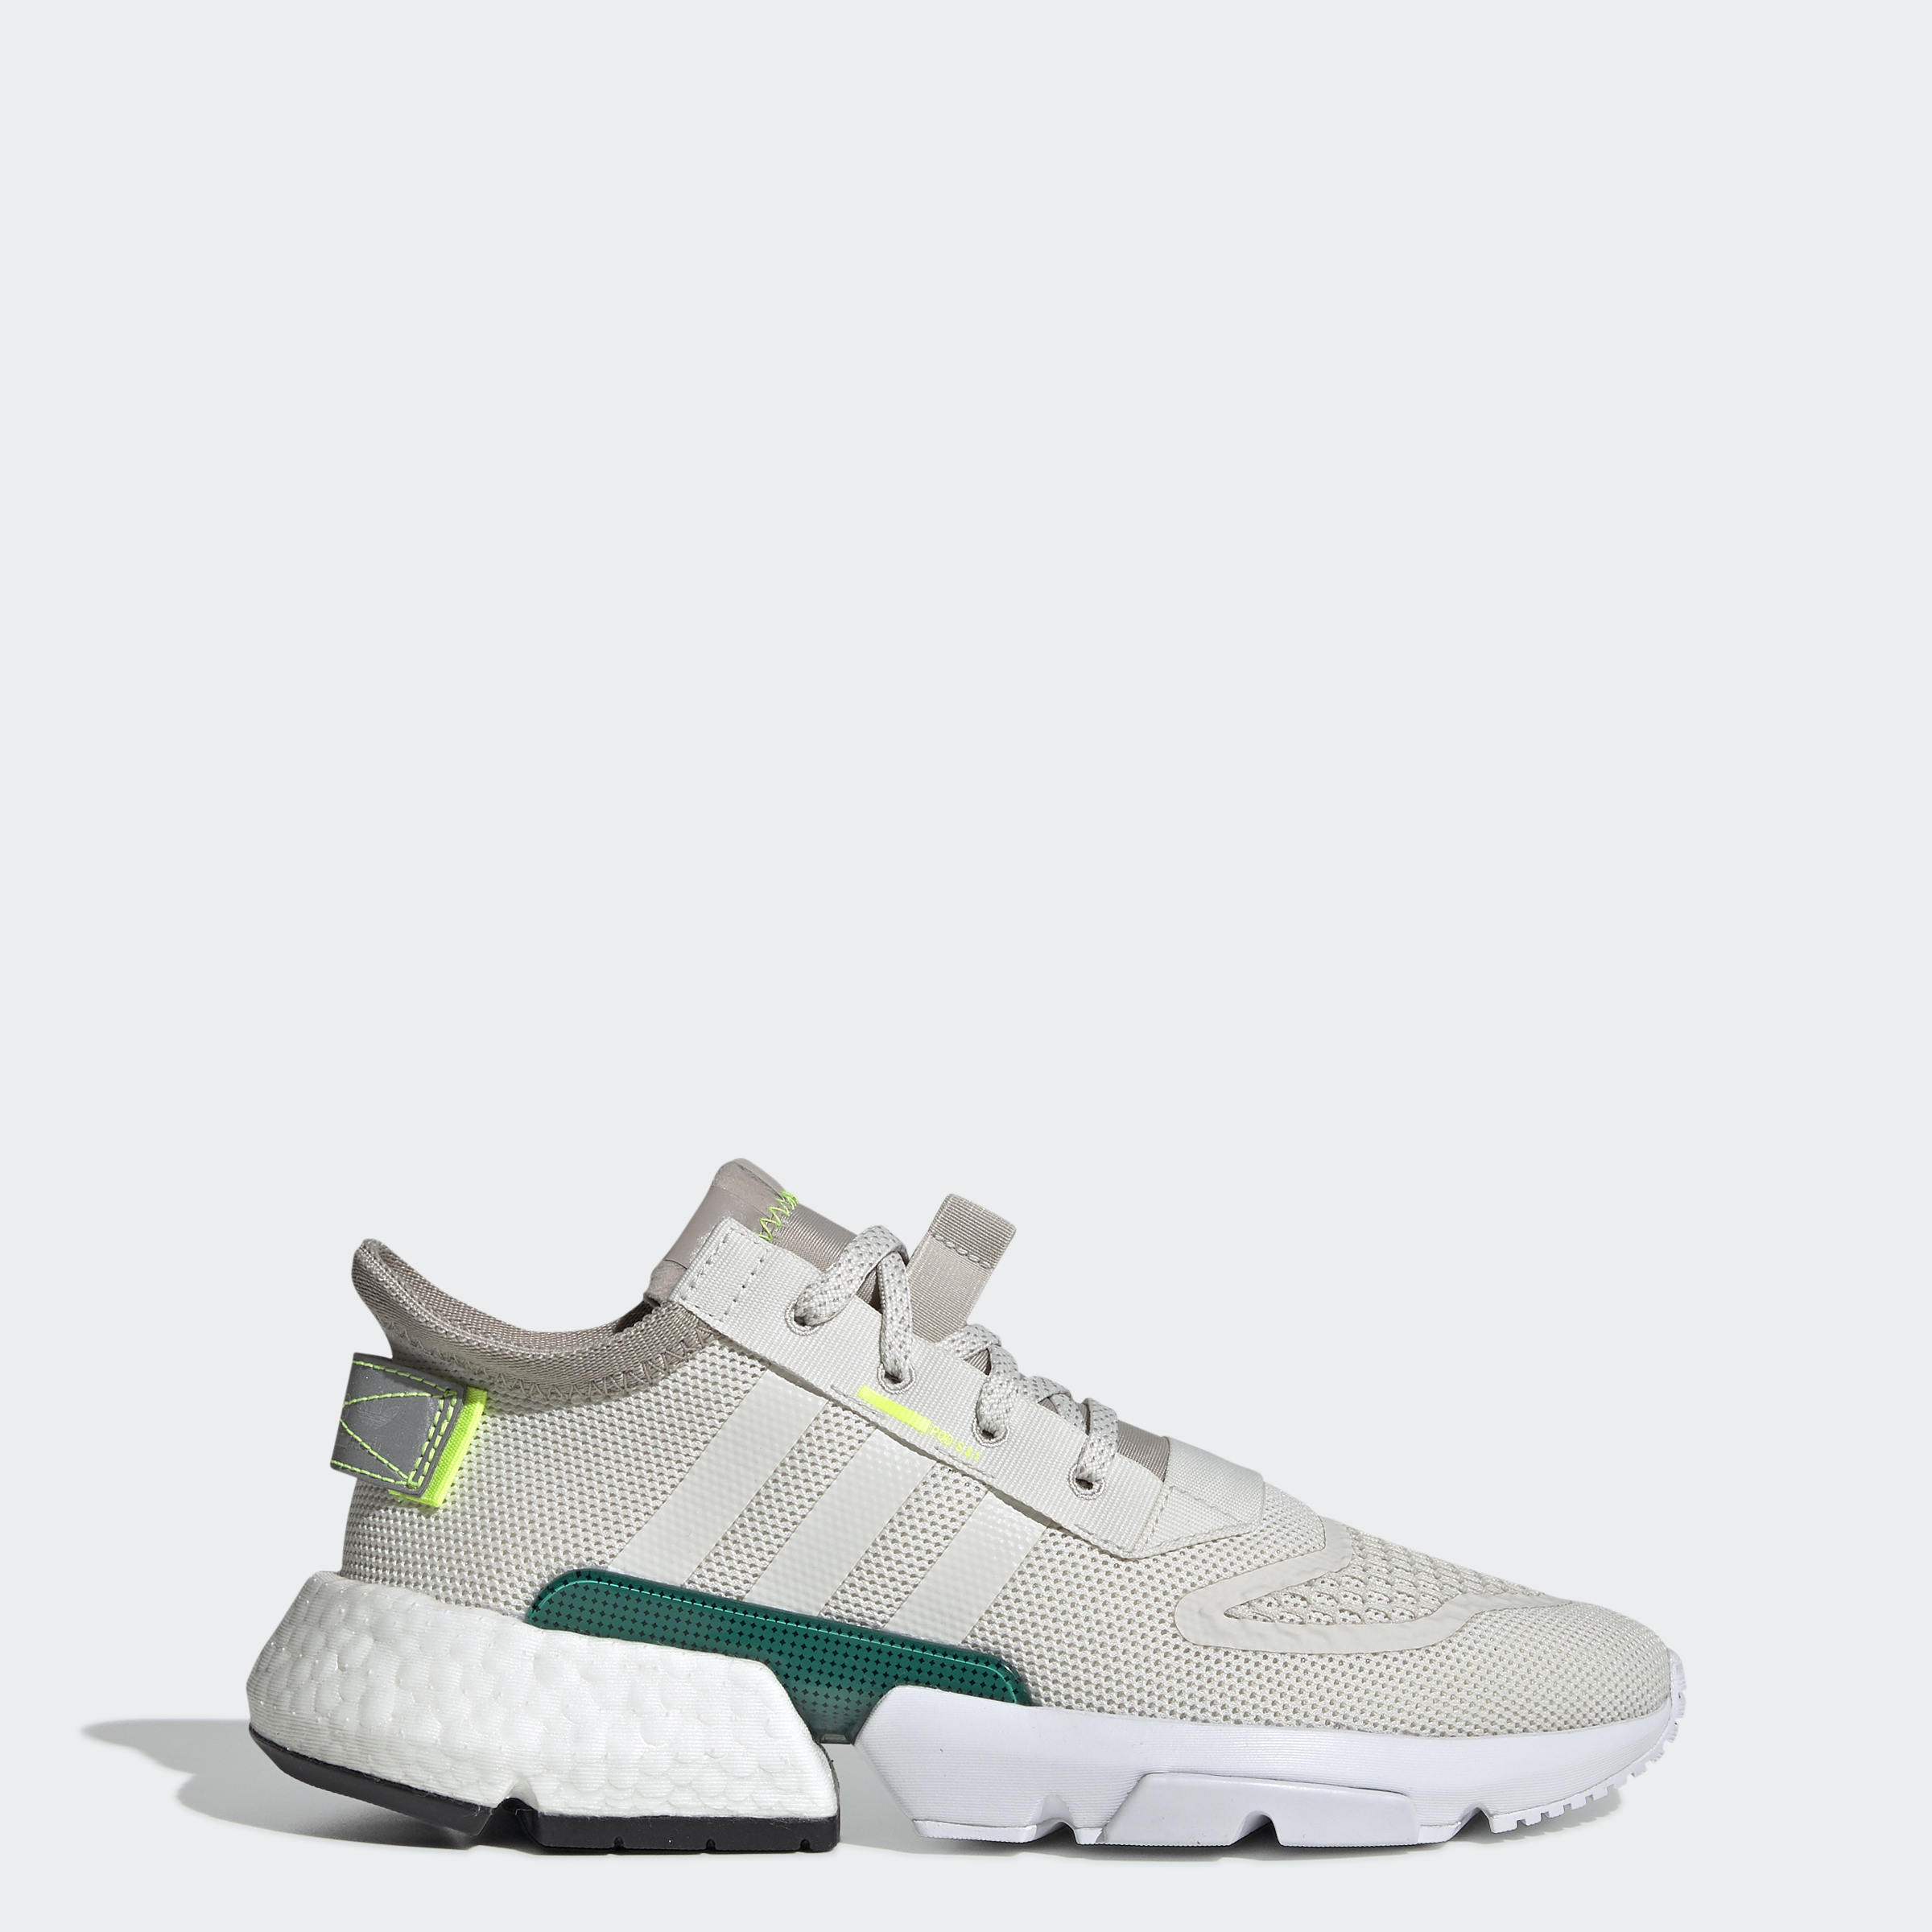 adidas-Originals-POD-S3-1-Shoes-Women-039-s thumbnail 25